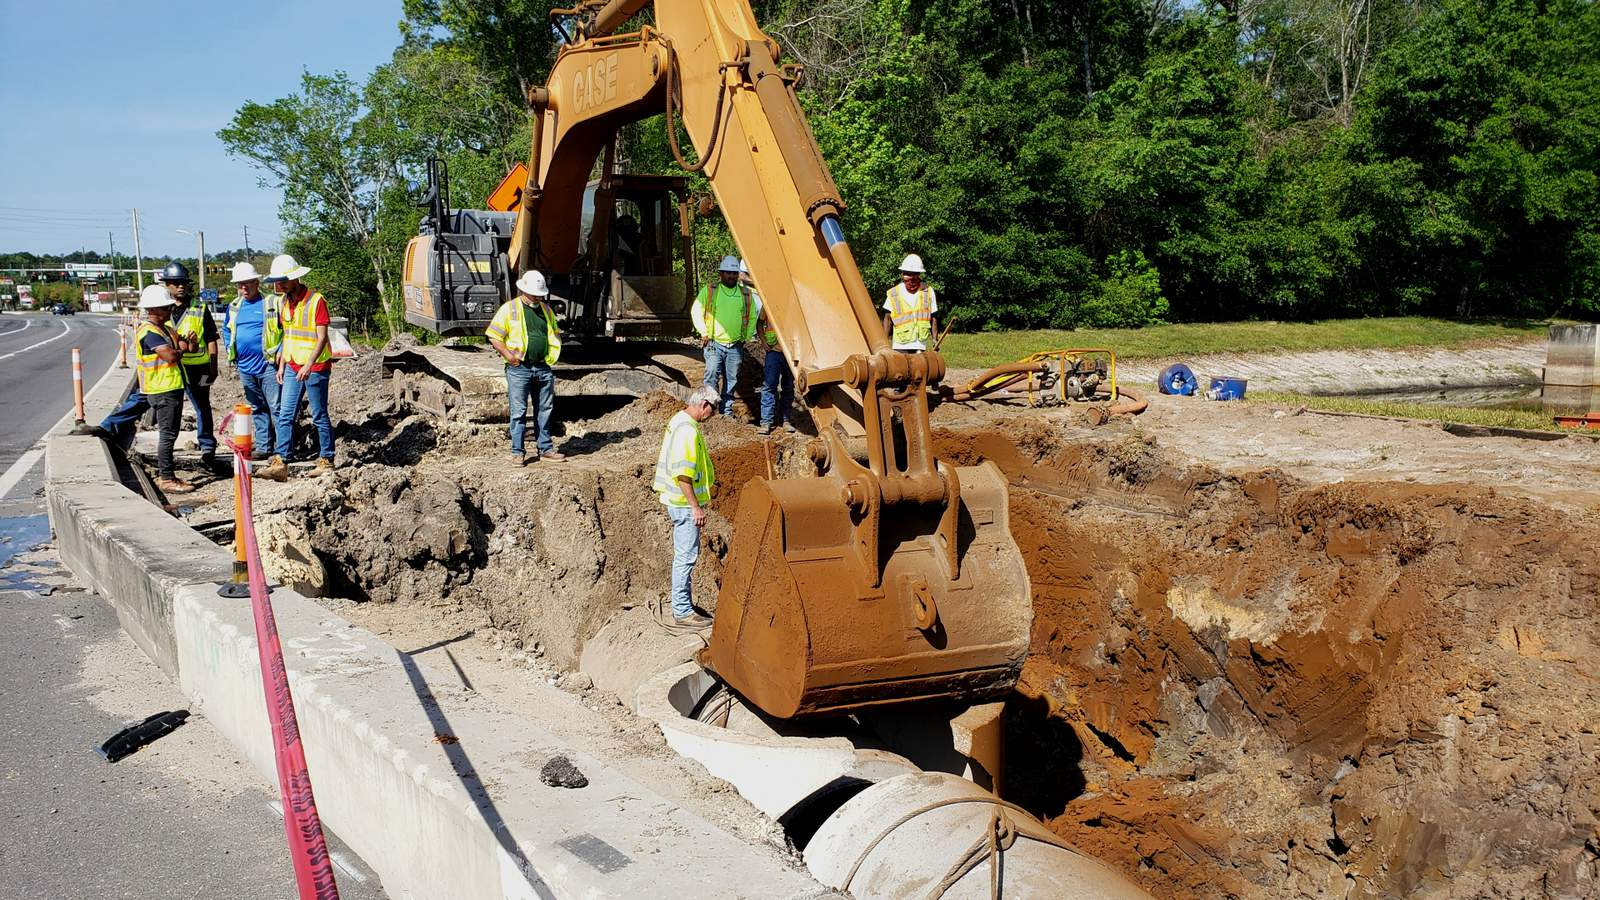 Evacuations & road closure lifted after Clay County gas line break